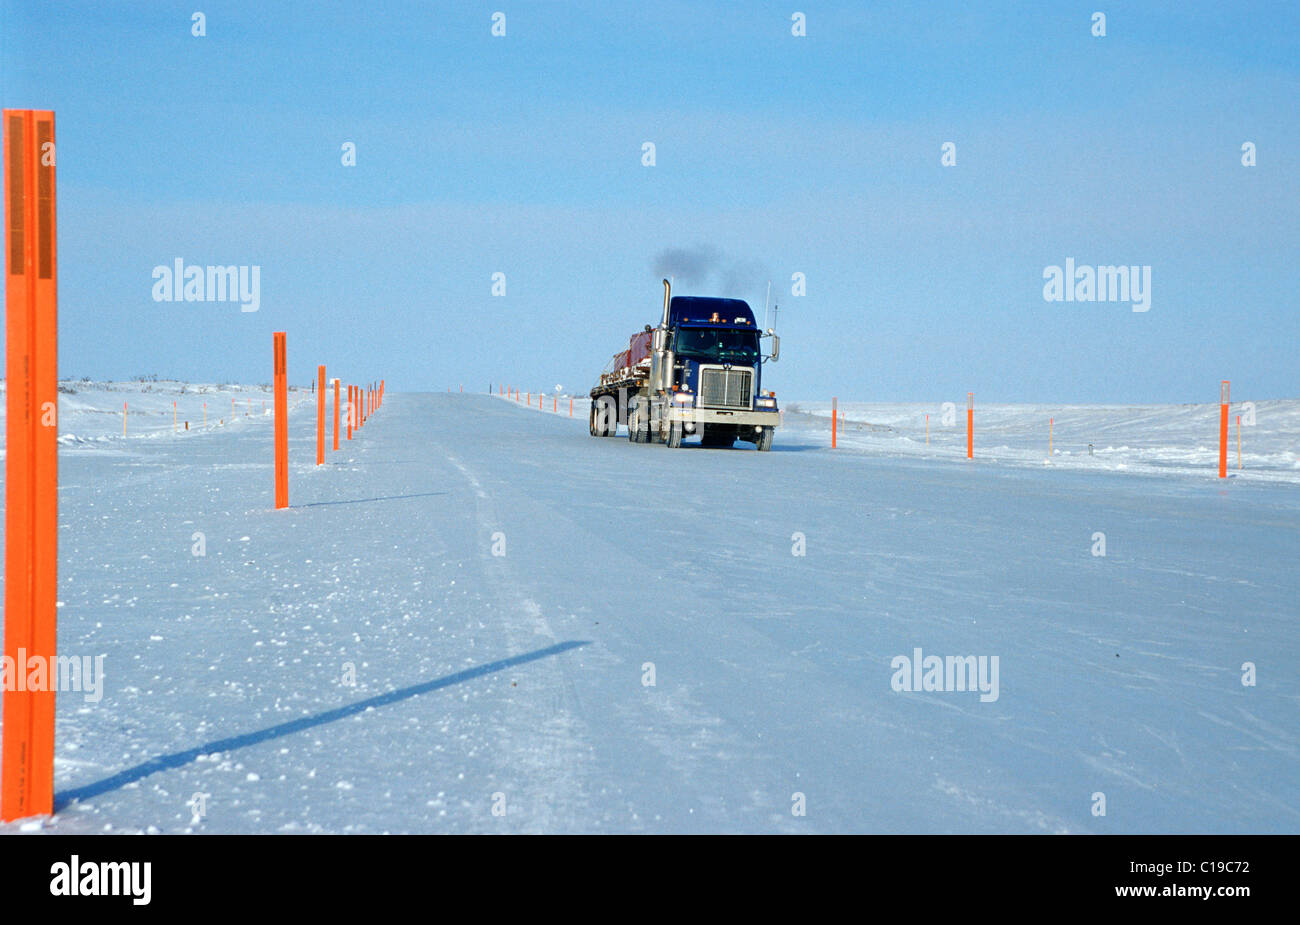 Truck driving on an ice road, built by oil companies and used to connect individual oil drilling sites in winter, - Stock Image